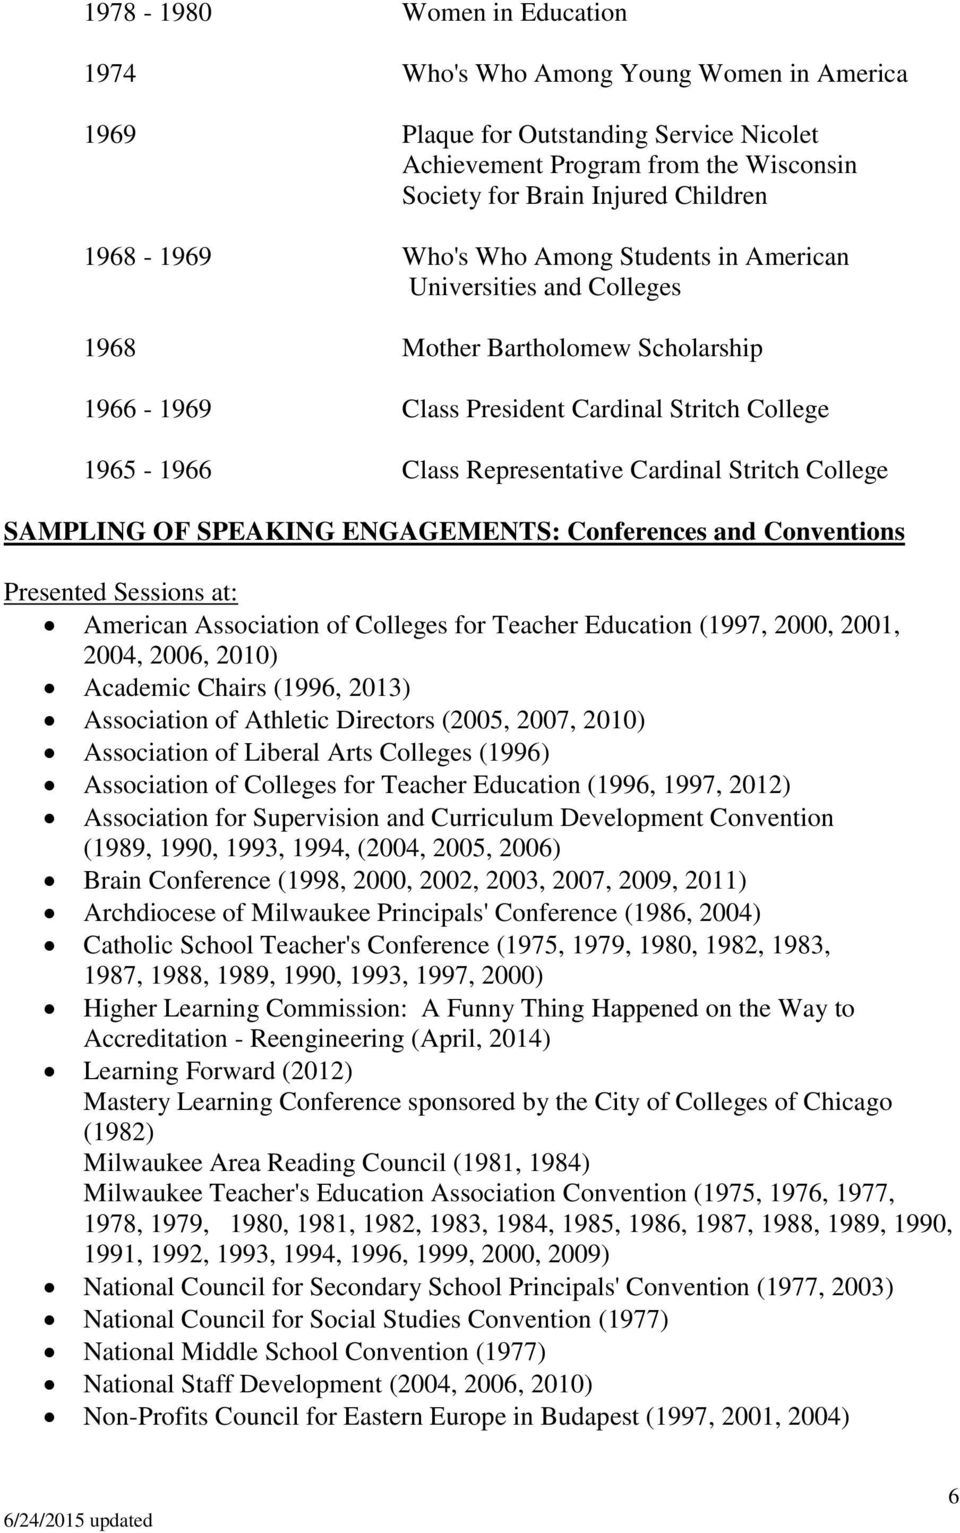 Conferences and Conventions Presented Sessions at: American Association of Colleges for Teacher Education (1997, 2000, 2001, 2004, 2006, 2010) Academic Chairs (1996, 2013) Association of Athletic